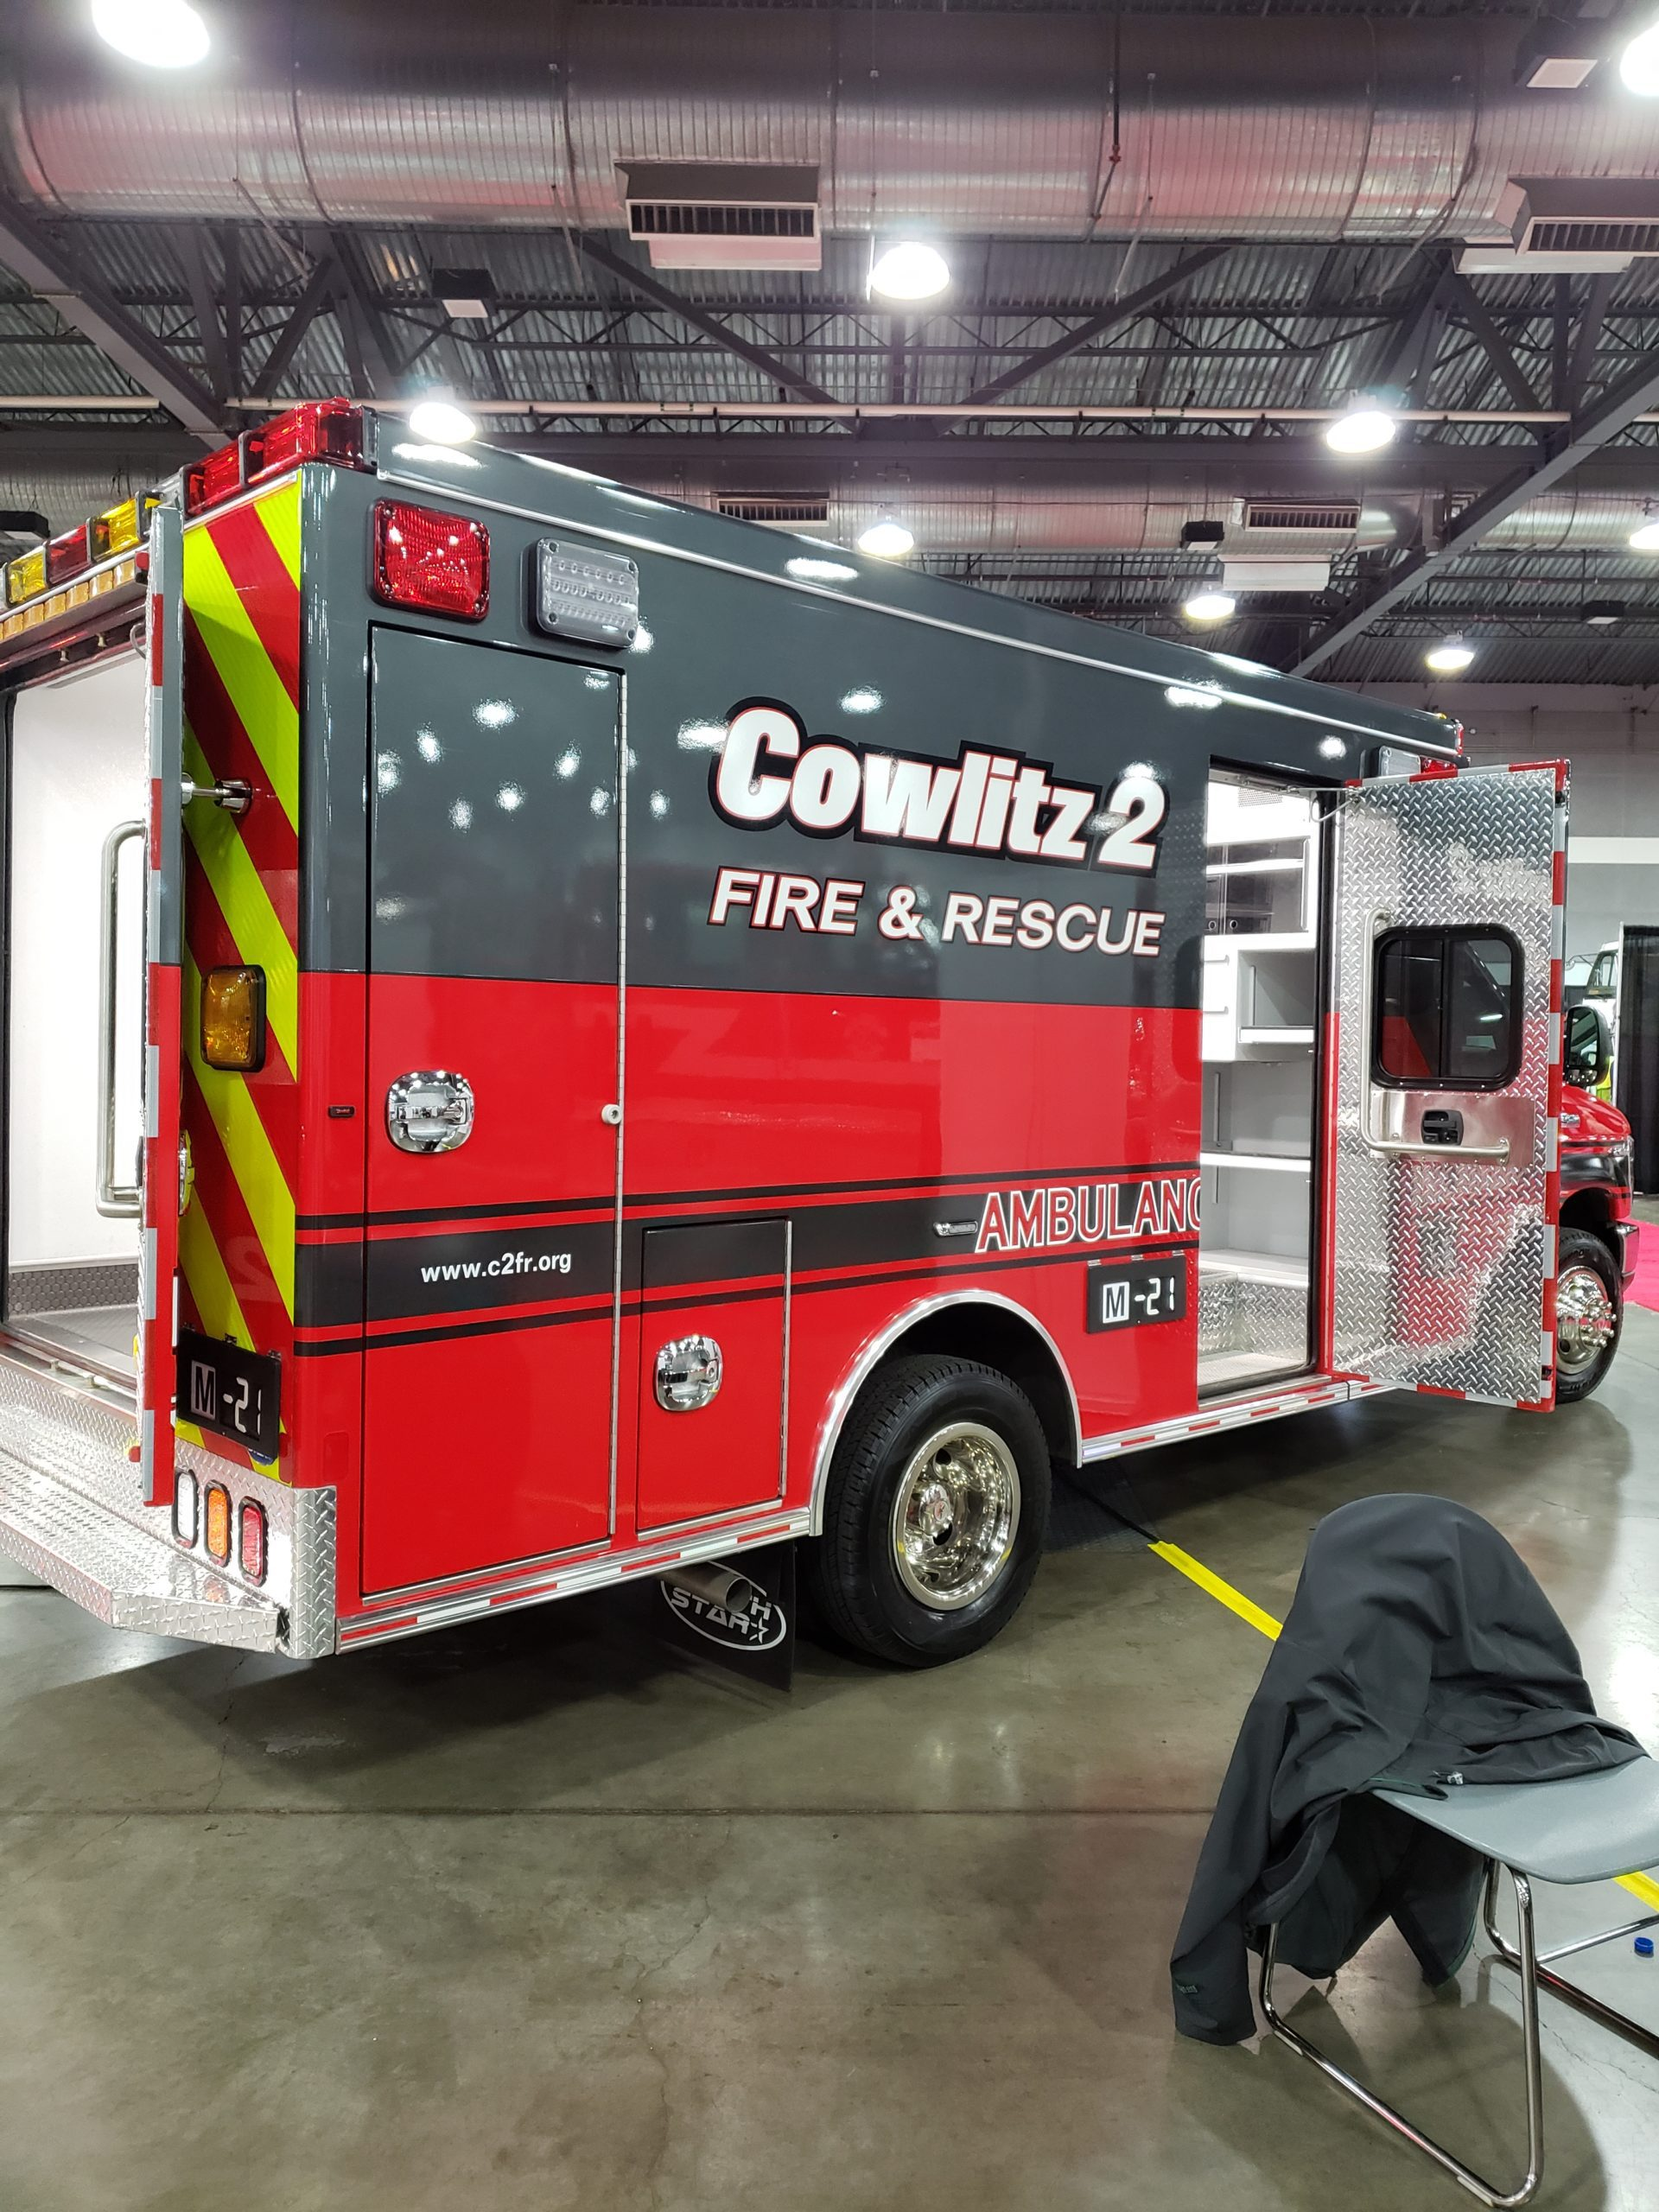 Cowlitz 2 Fire & Rescue Ambulance